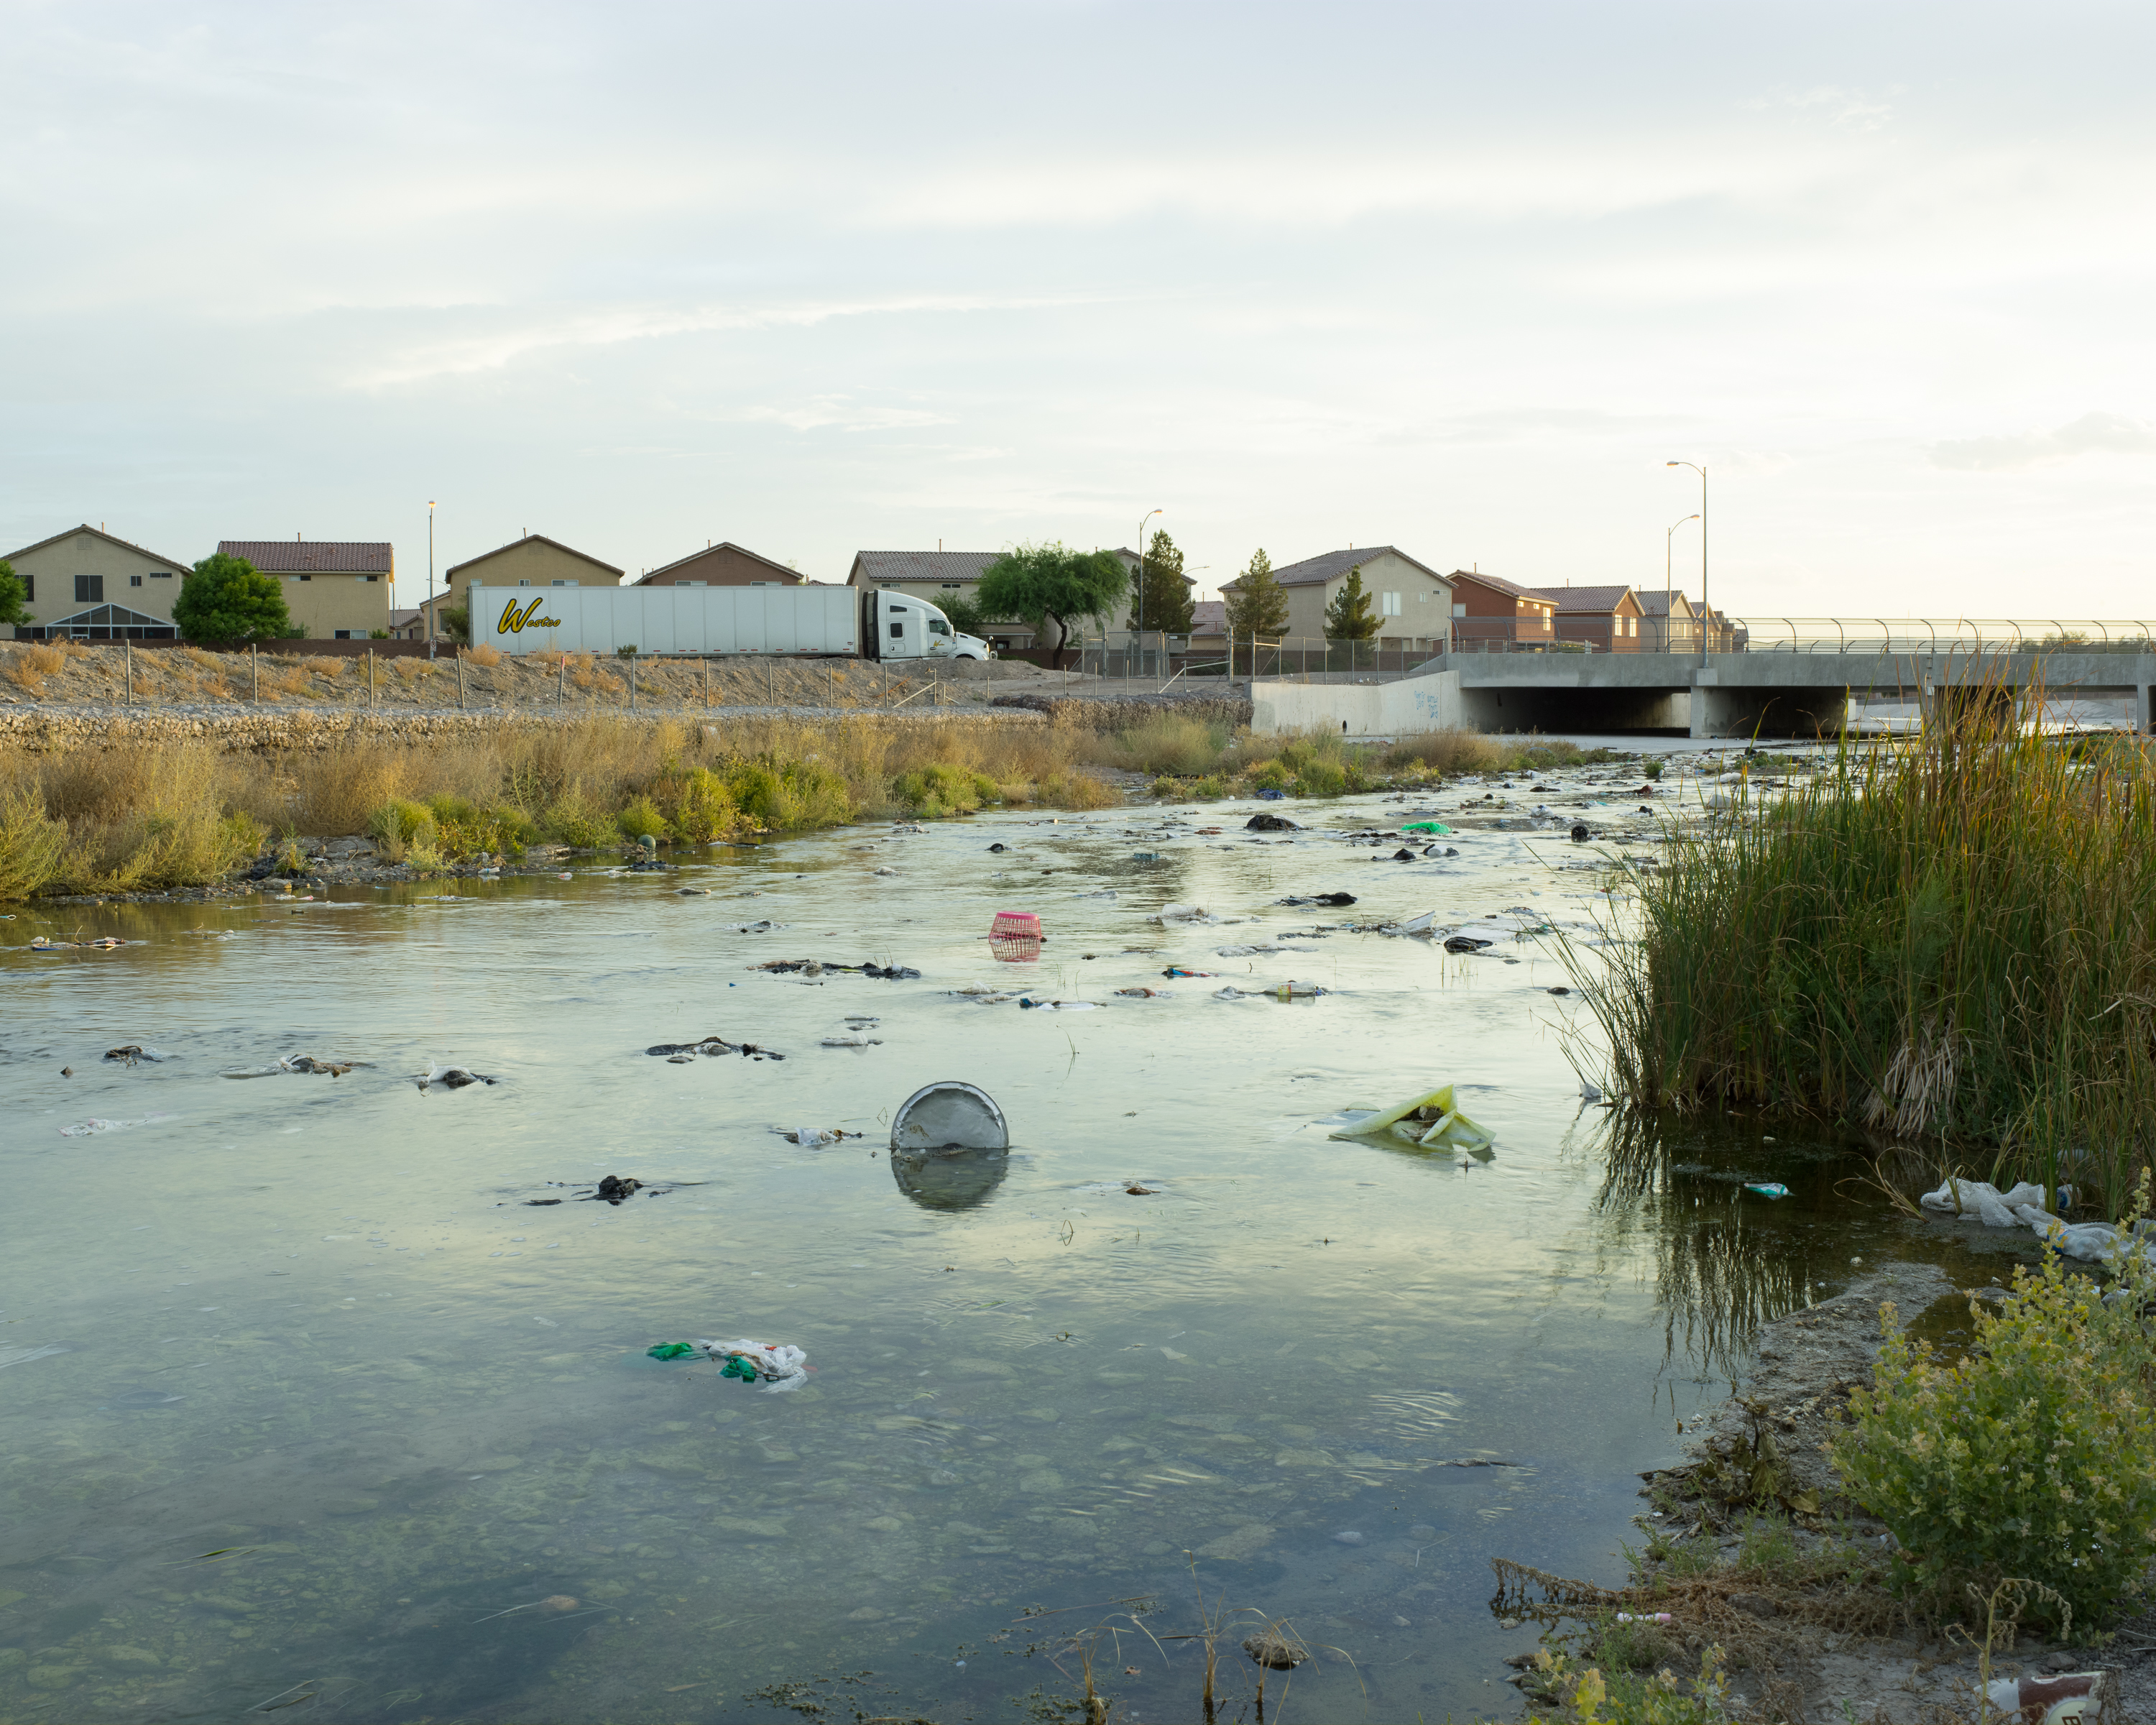 A river polluted with trash and everyday household items gives way to dense housing development and a semi-truck crossing a bridge in the background